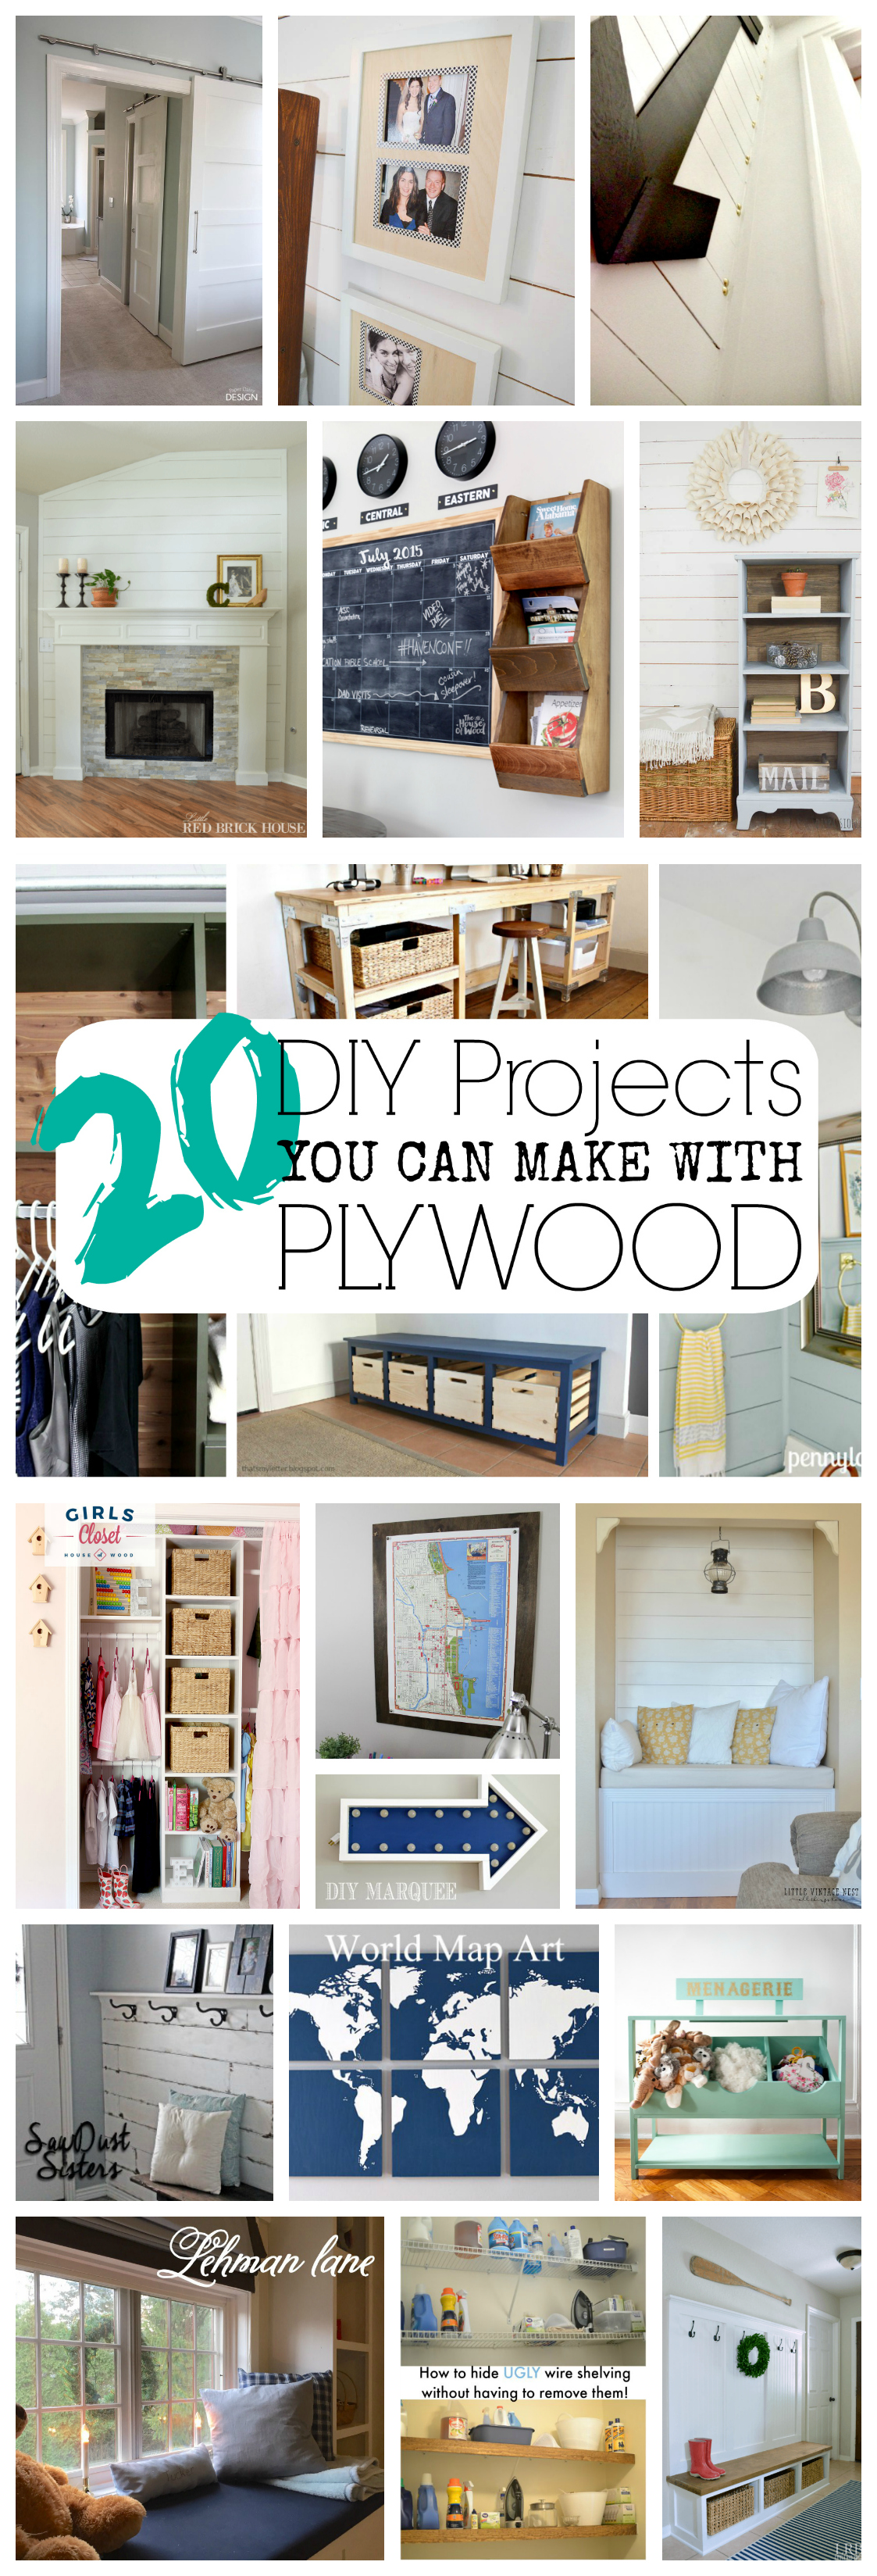 Plywood Projects - The Weathered Fox